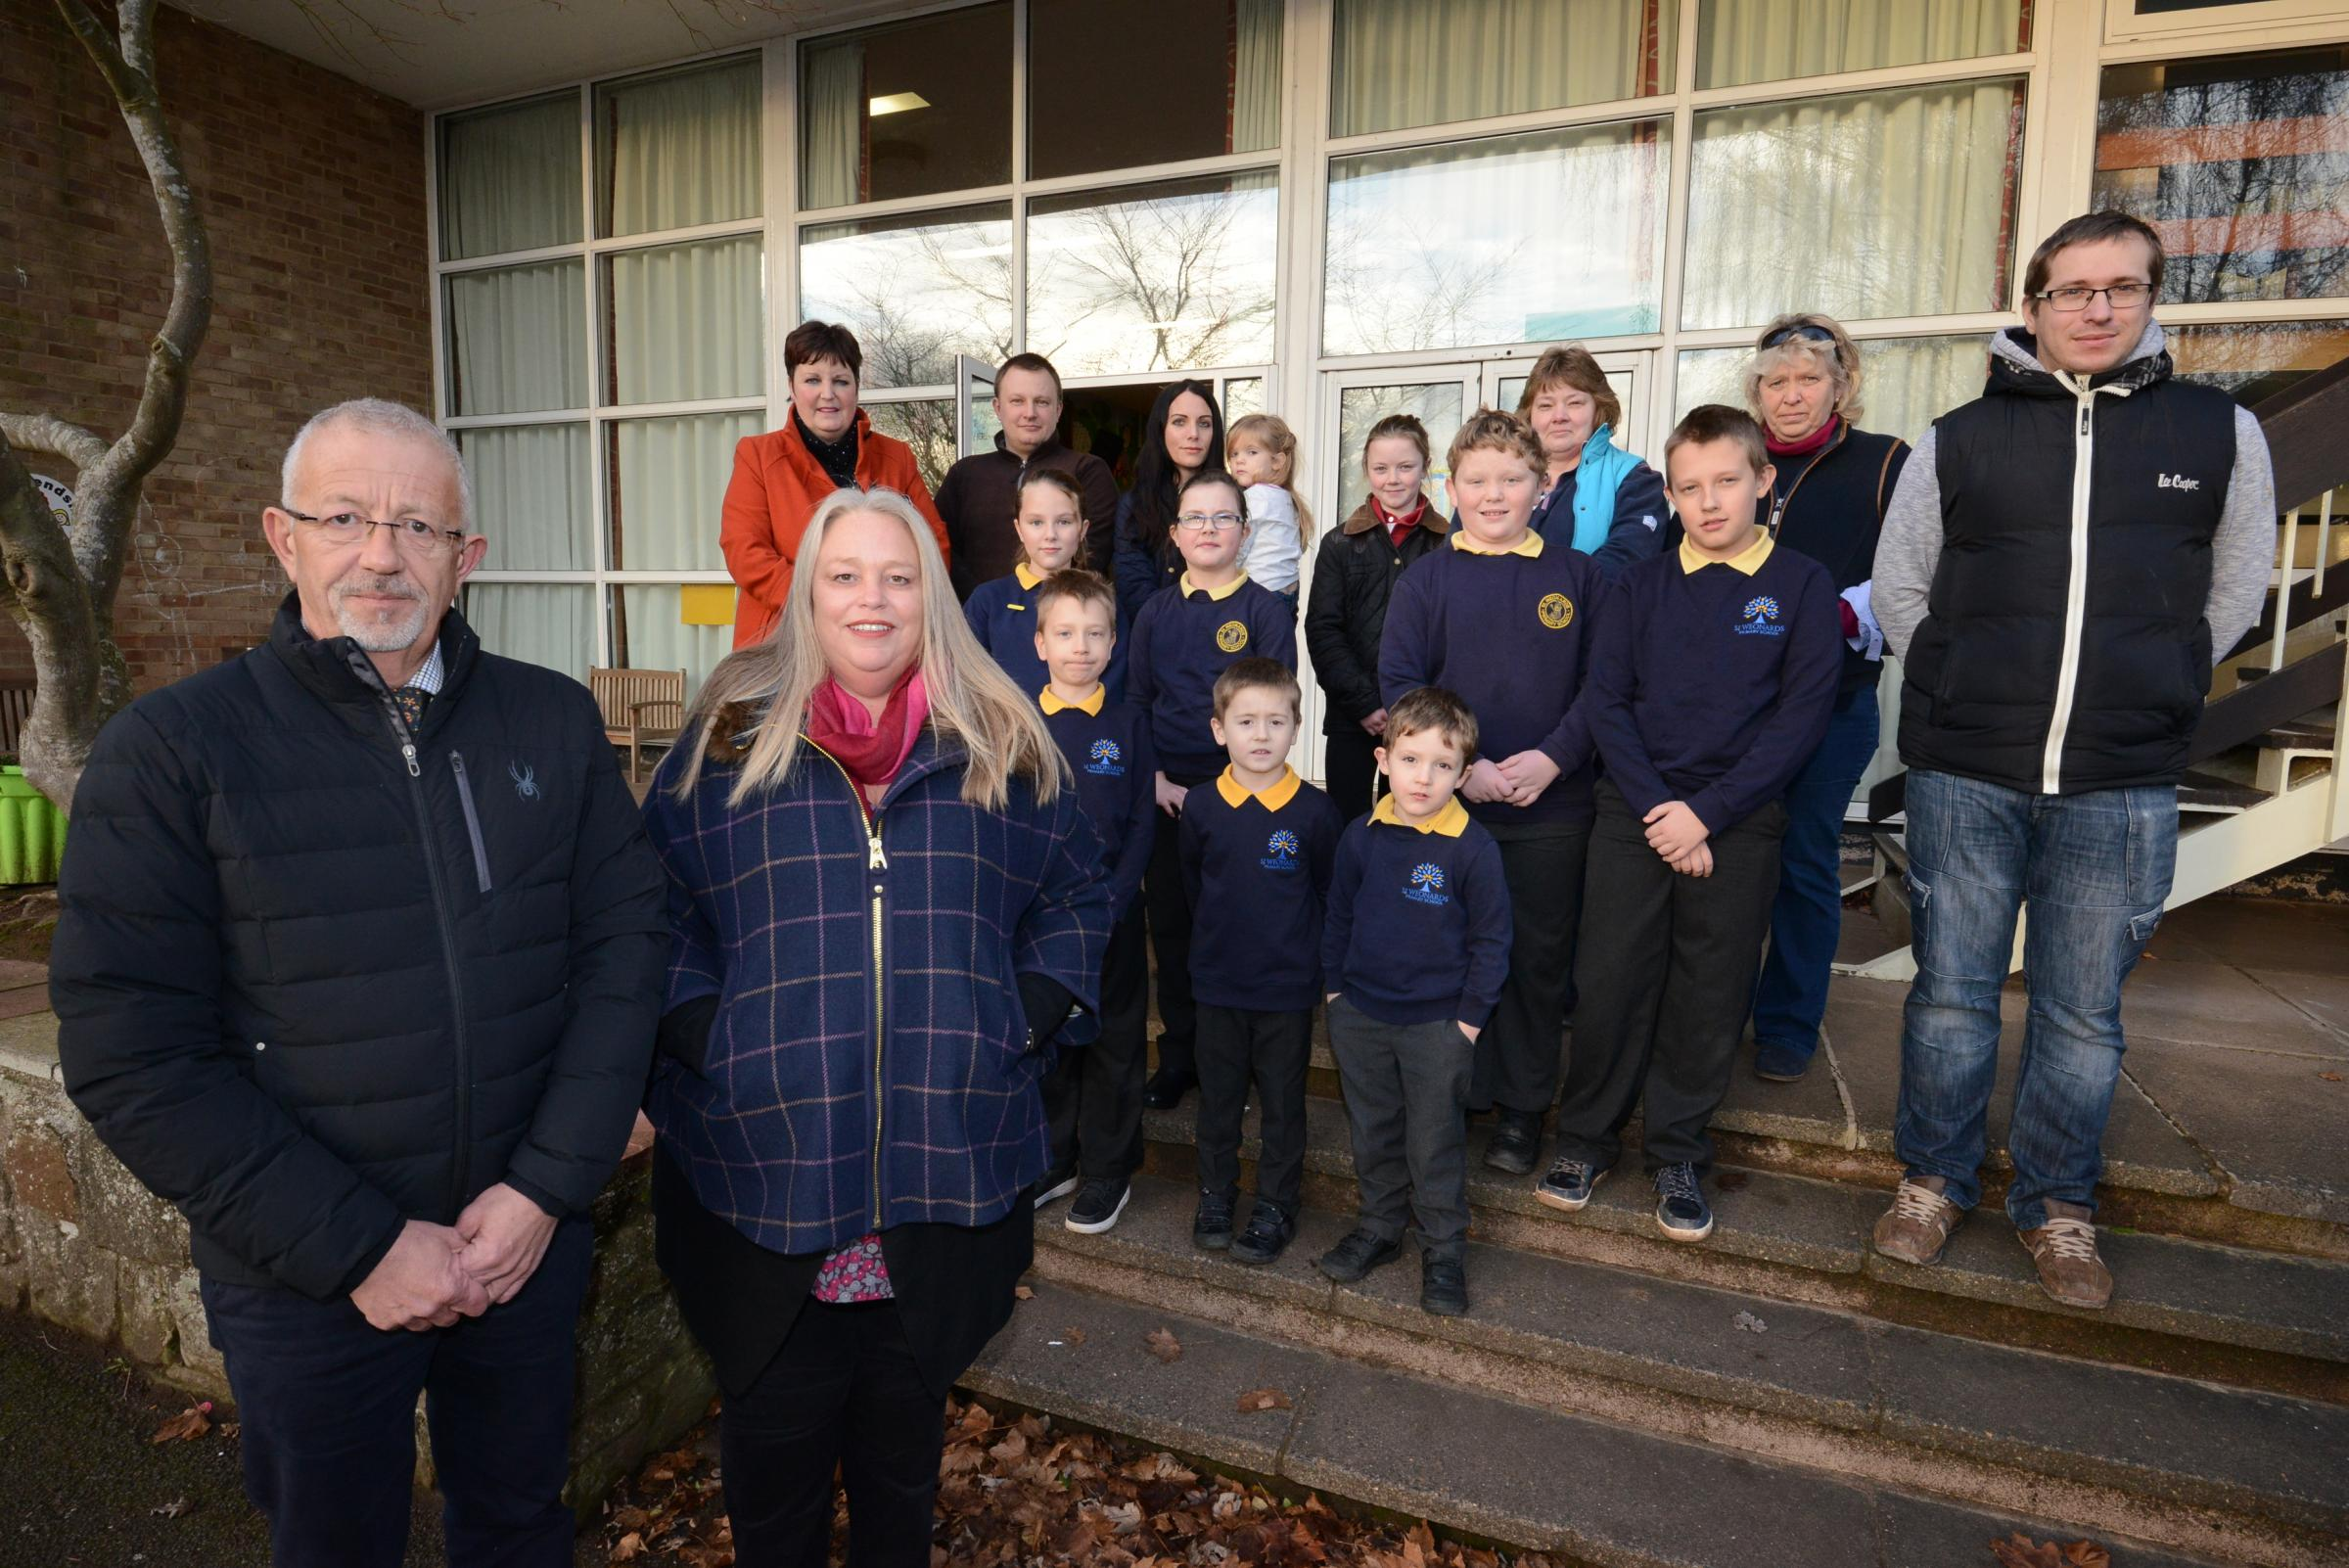 Chief Executive Peter Box & Executive Headteacher Maggi Newton with children & parents at St. Weonards Primary School. The school are hoping to introduce flexi-schooling, working alongside home-schooled children..